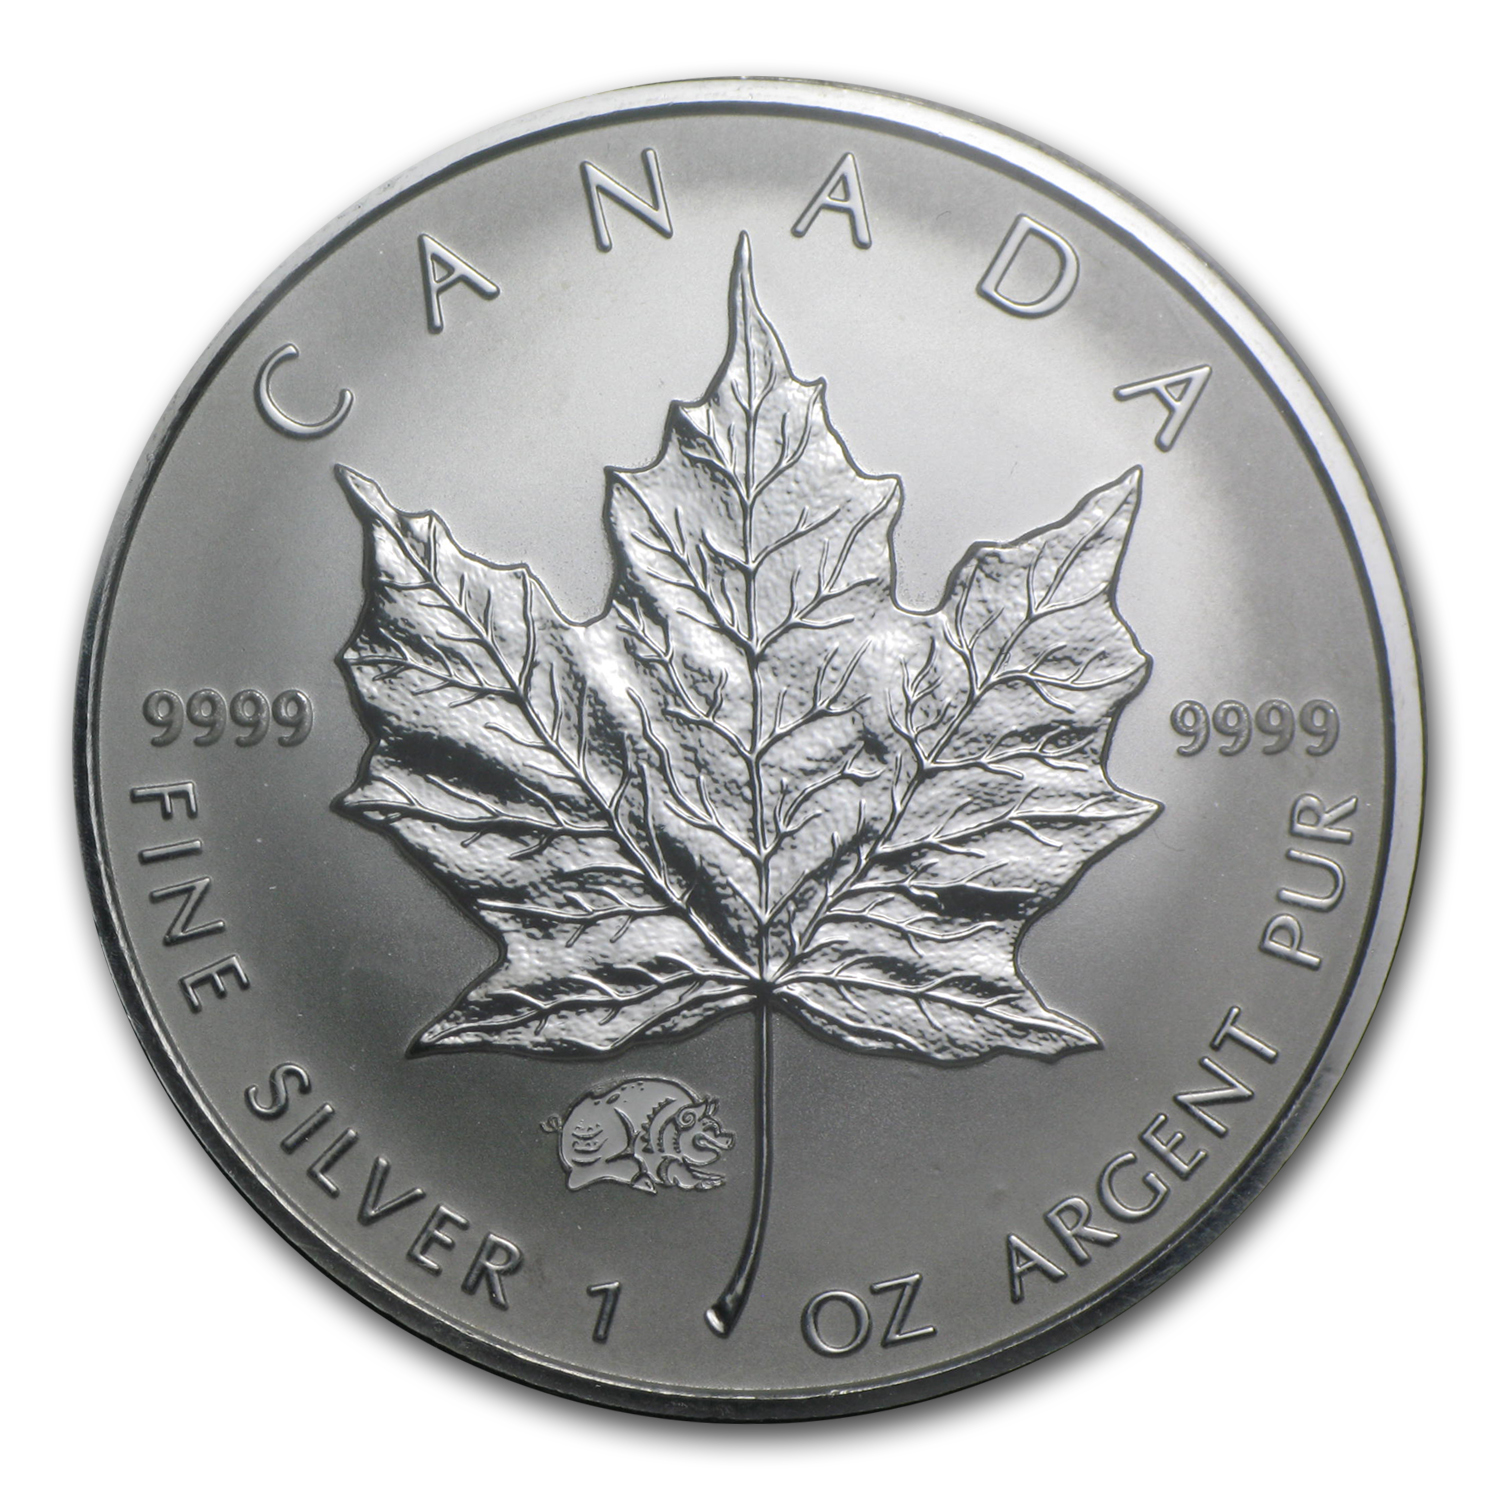 2007 Canada 1 oz Silver Maple Leaf Lunar PIG Privy